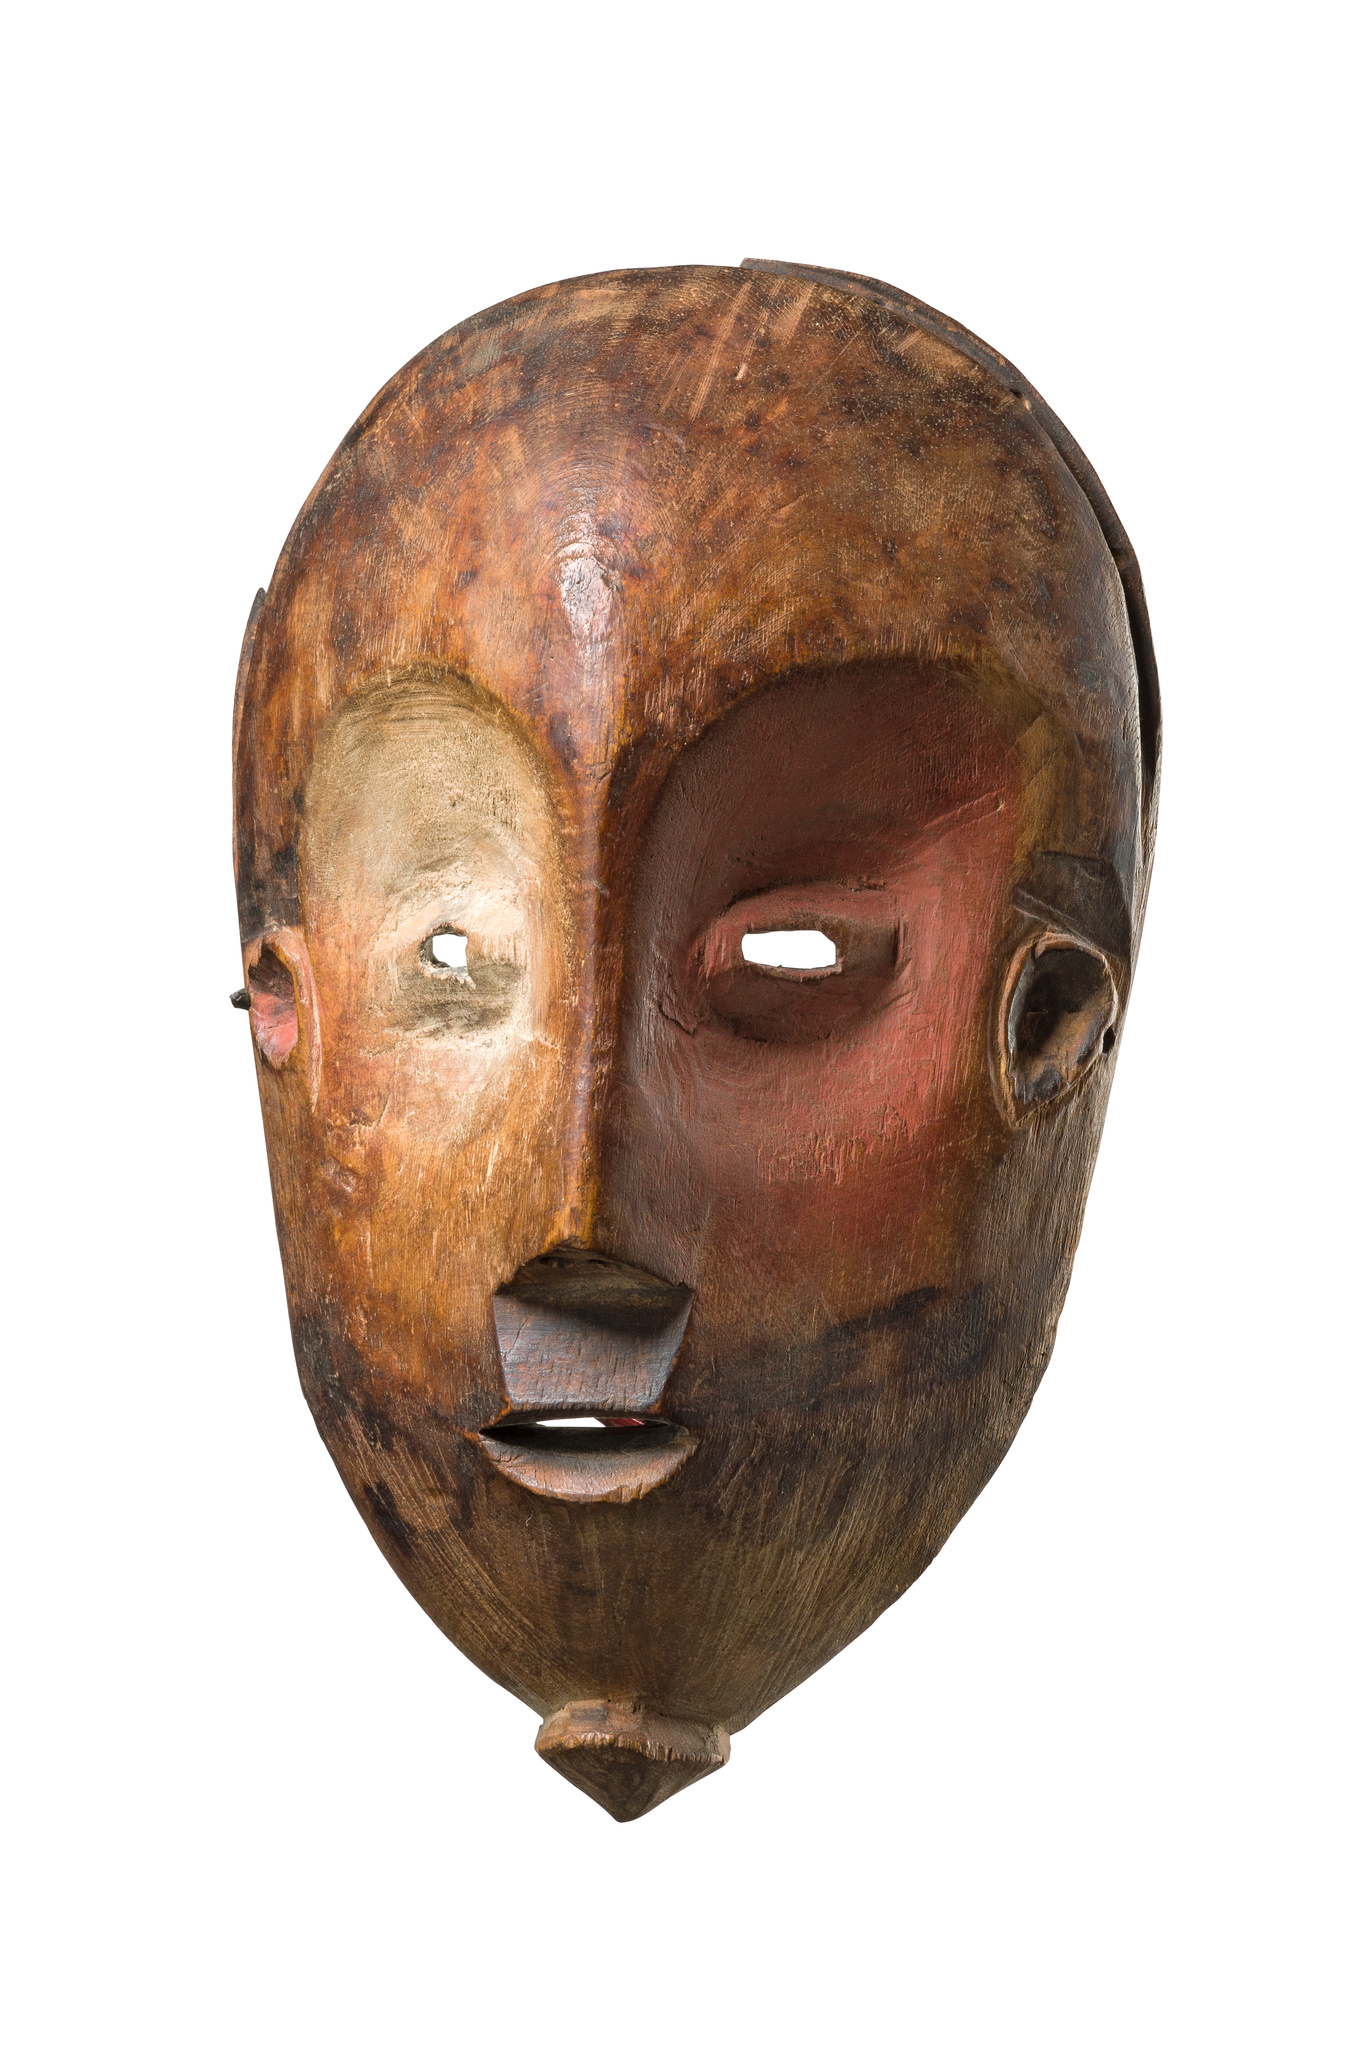 Anthropomorphic mask